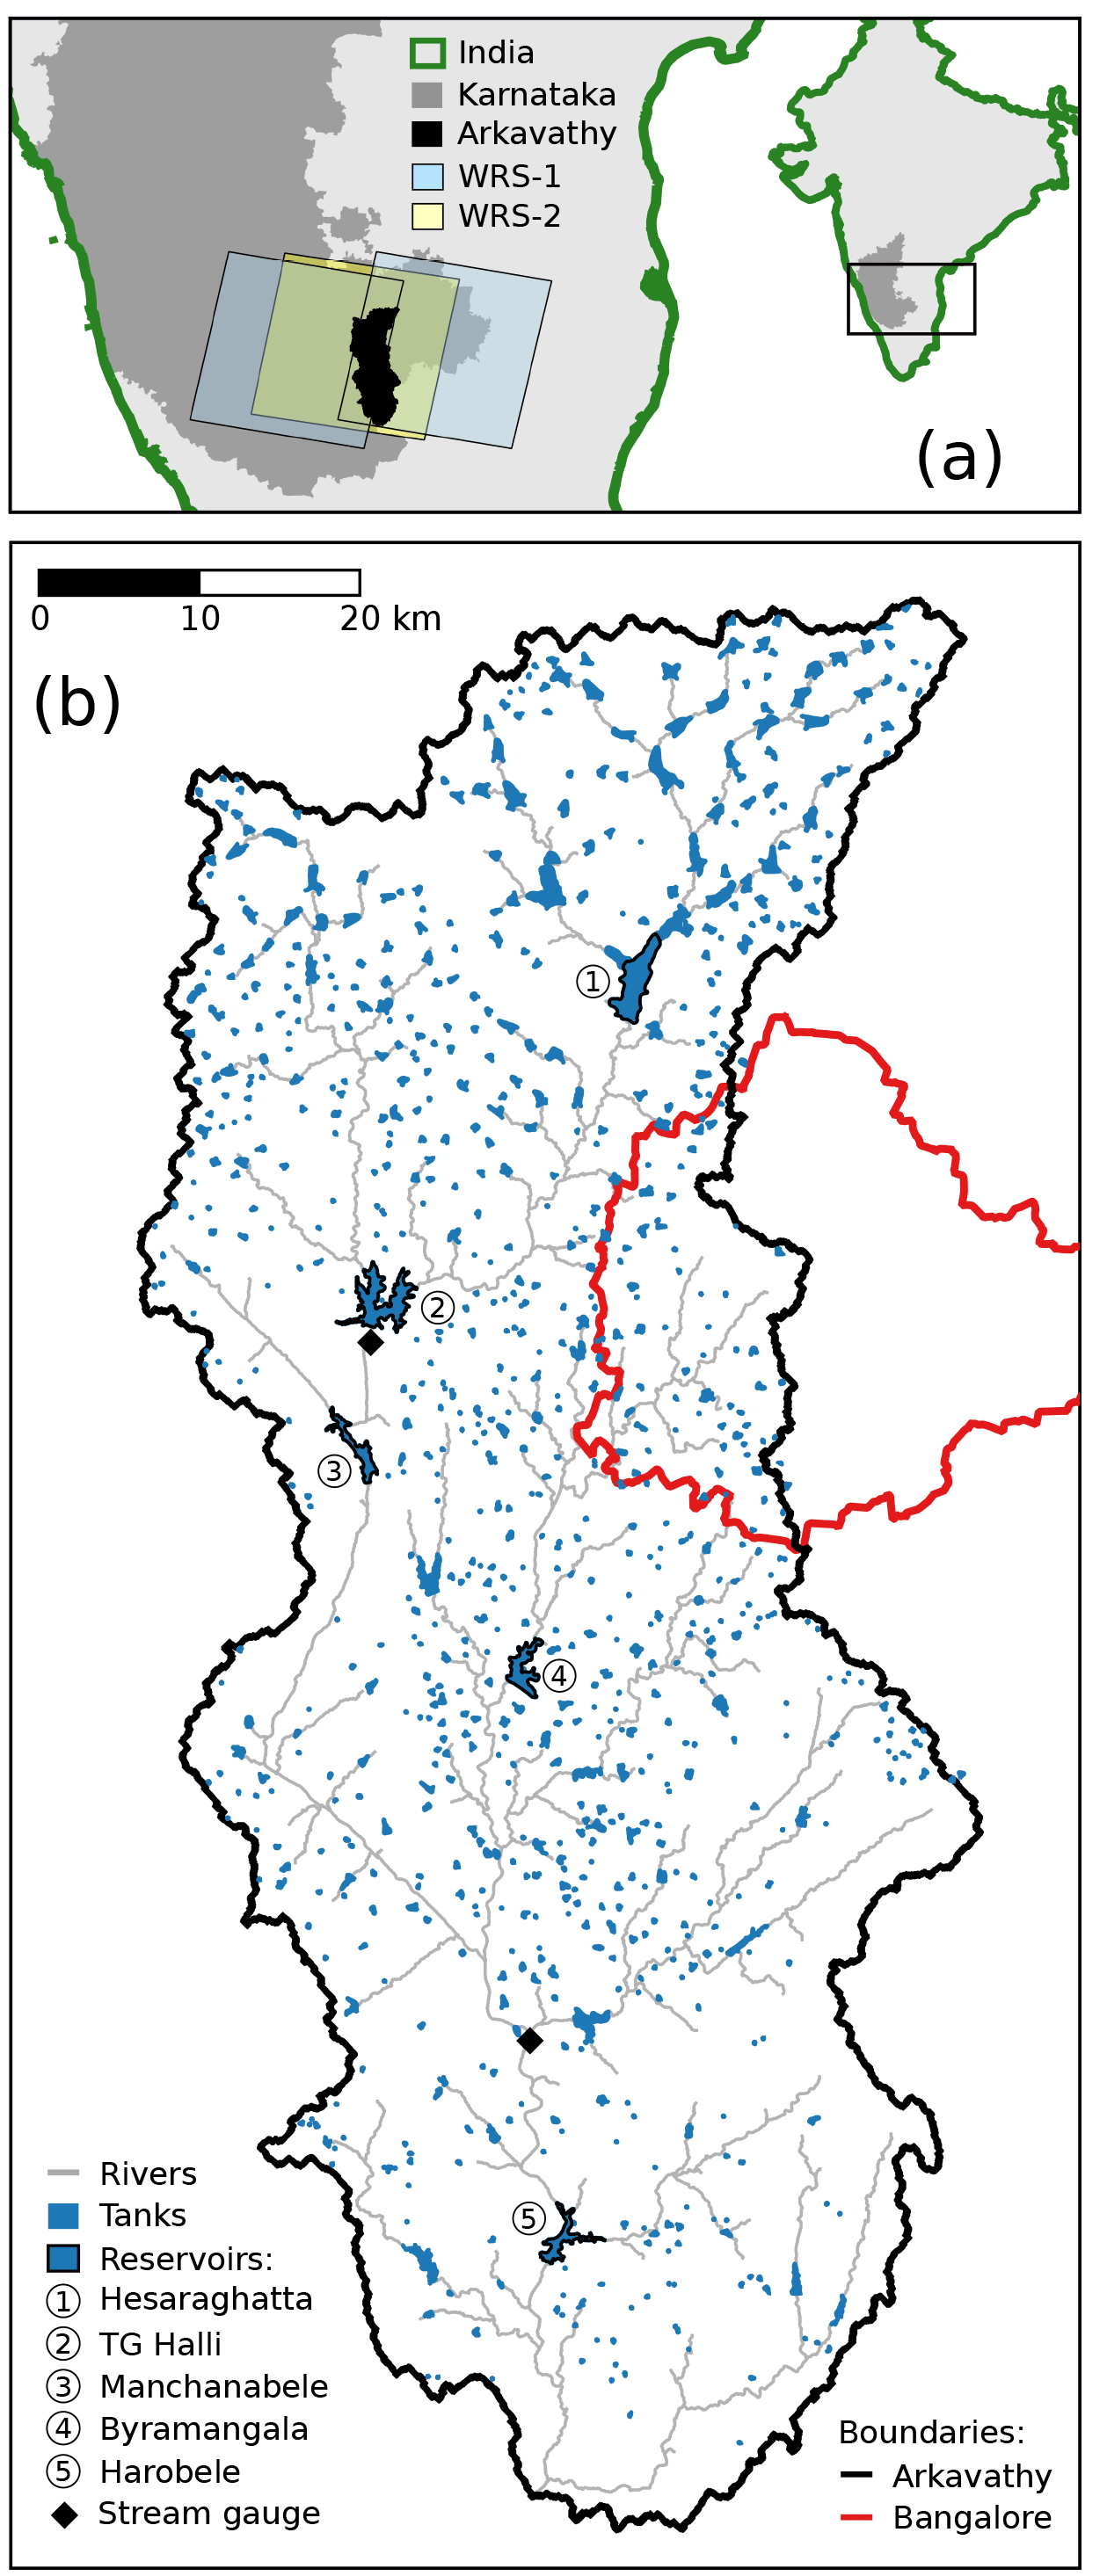 HESS - Spatial characterization of long-term hydrological change in